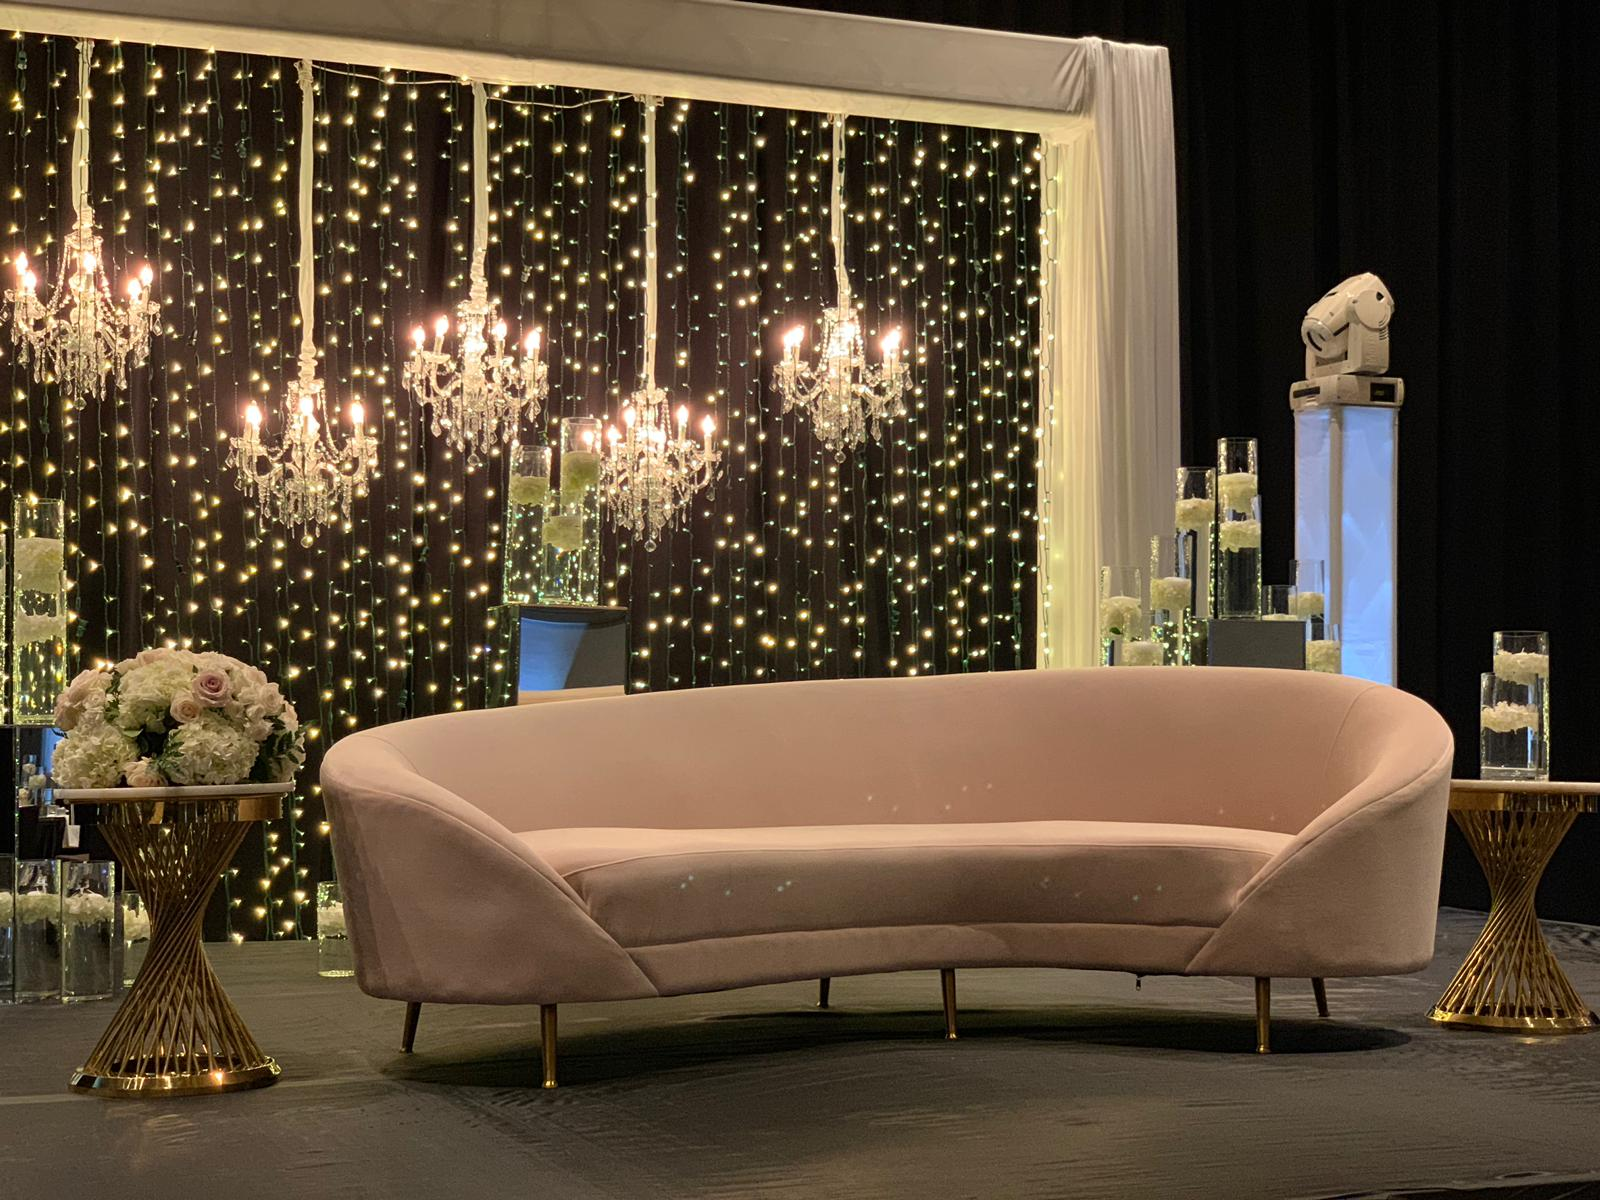 Celine Sofa, Infinity Accent Tables, Chandeliers, String Lights